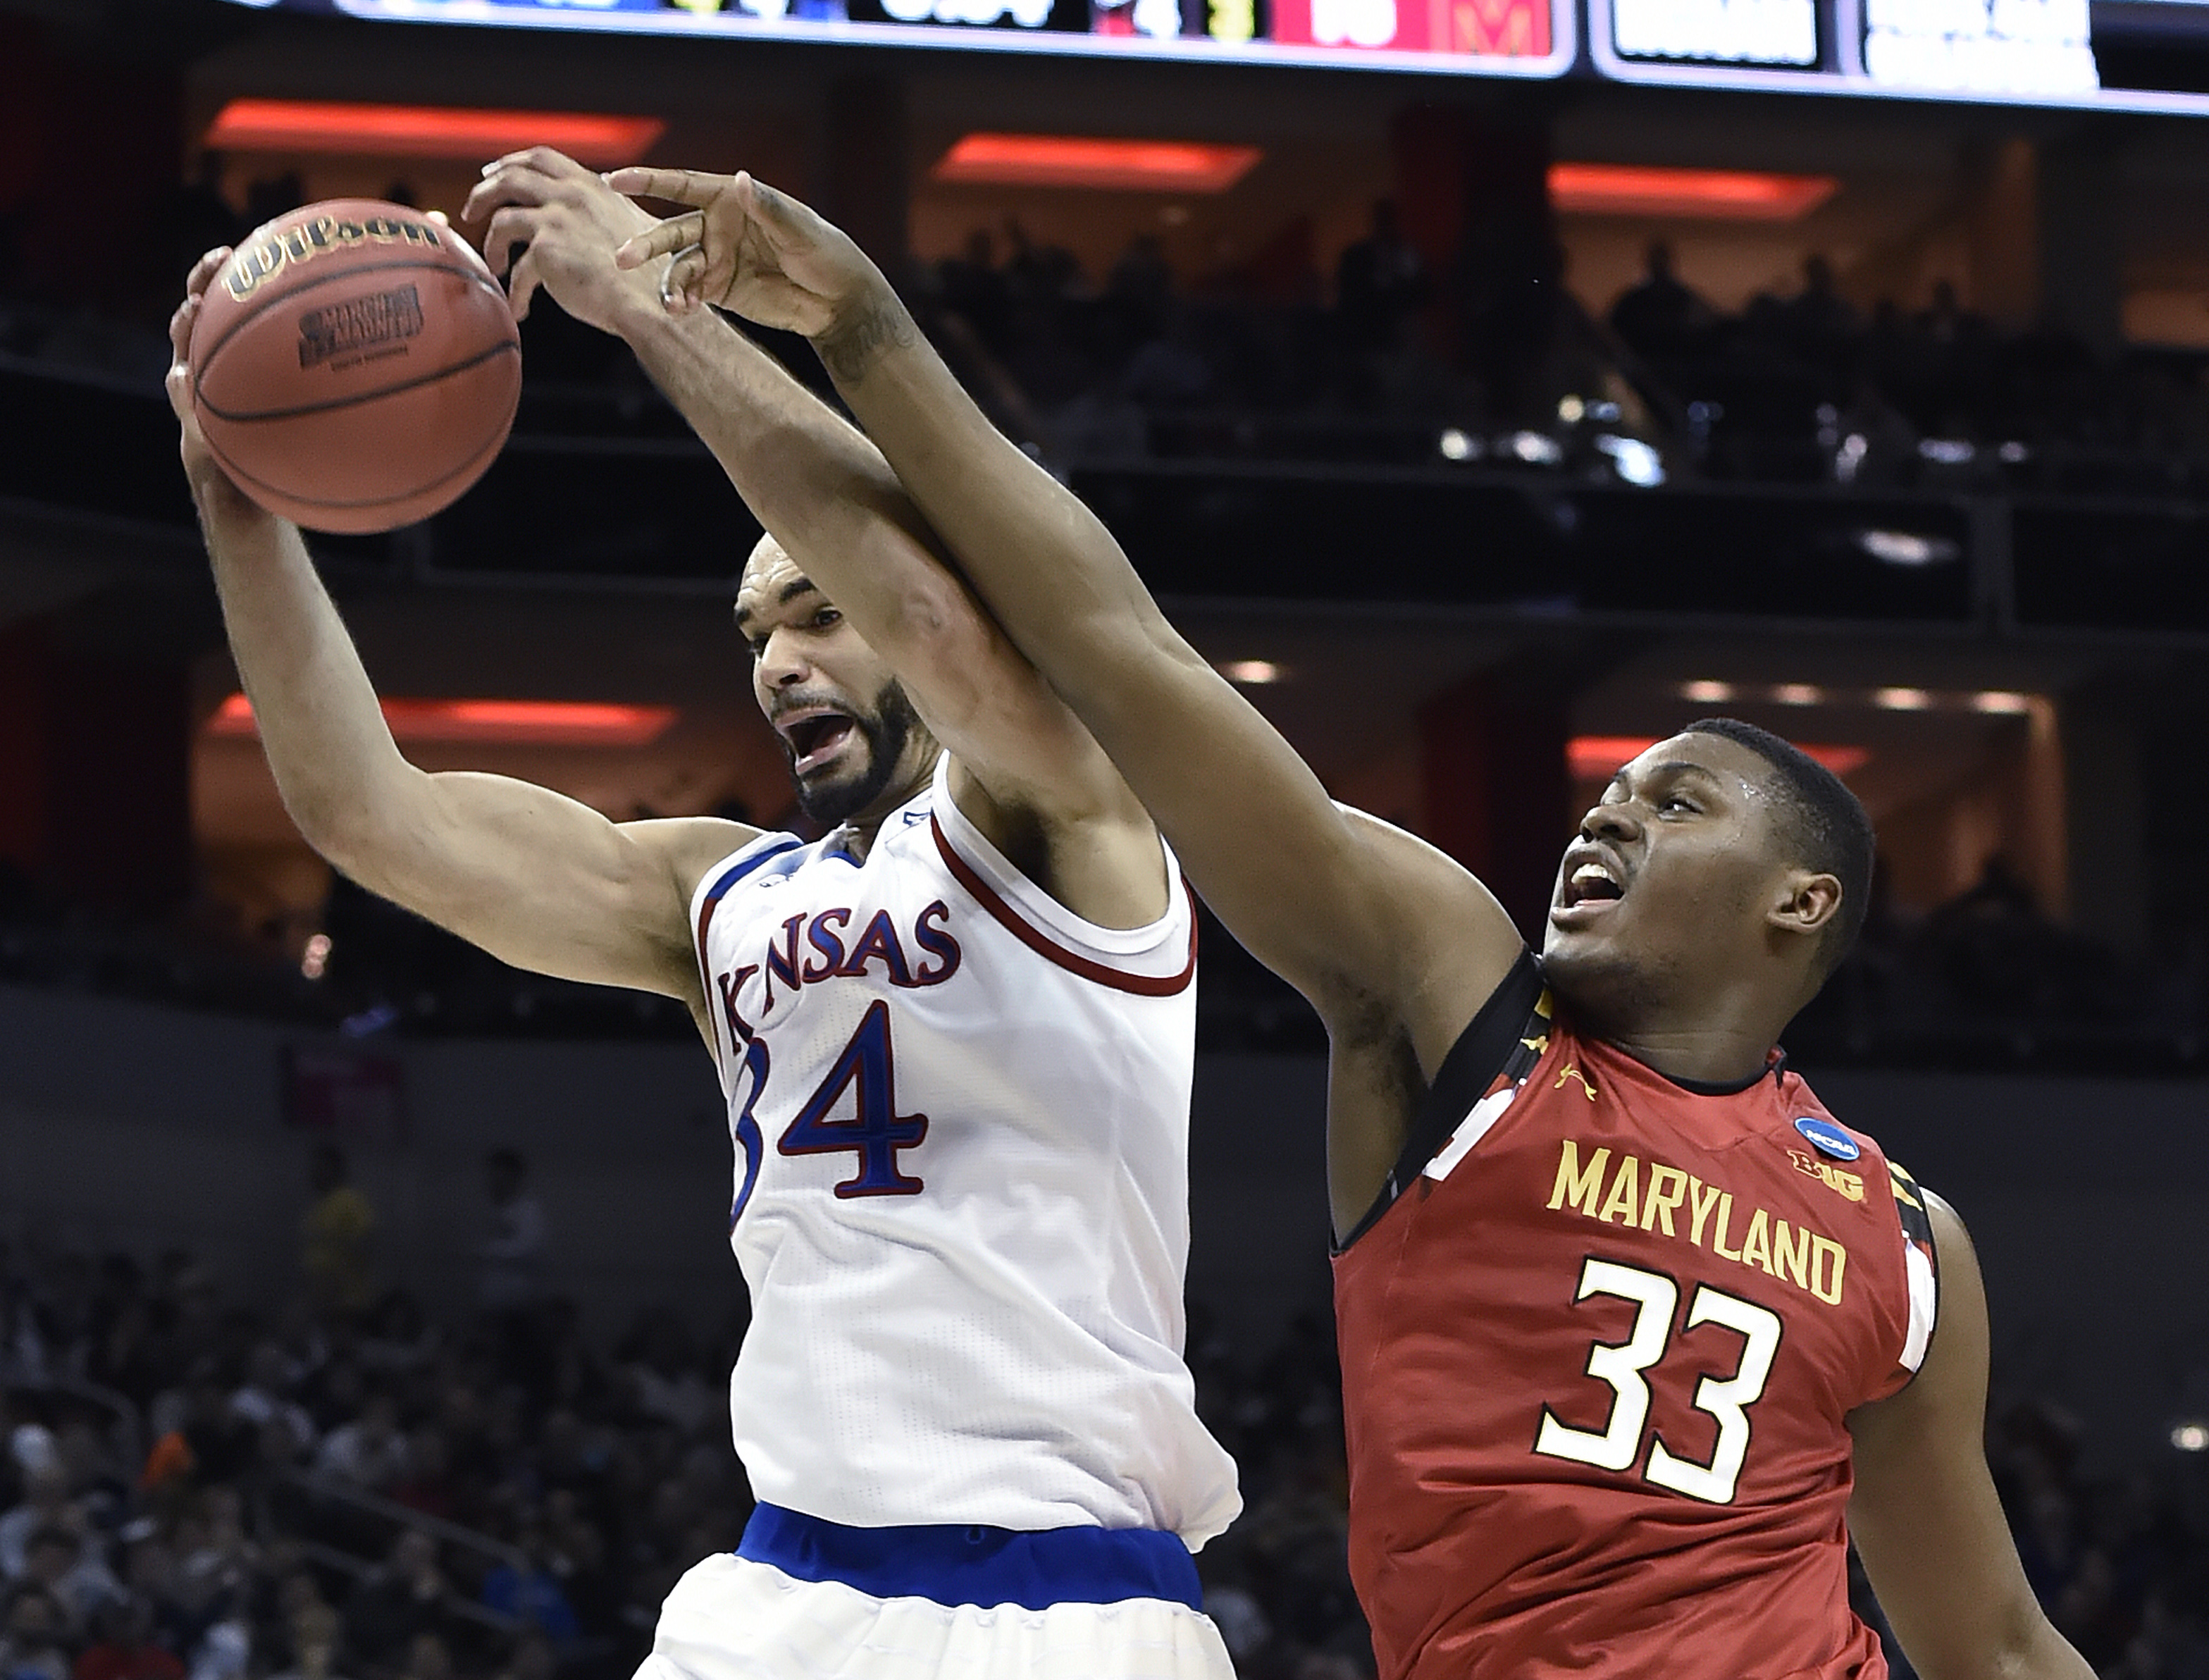 Kansas forward Perry Ellis (34) pulls down a rebound away from Maryland center Diamond Stone (33) during the first half of an NCAA college basketball game in the regional semifinals of the men's NCAA Tournament, in Louisville, Ky., Thursday, March 24, 201